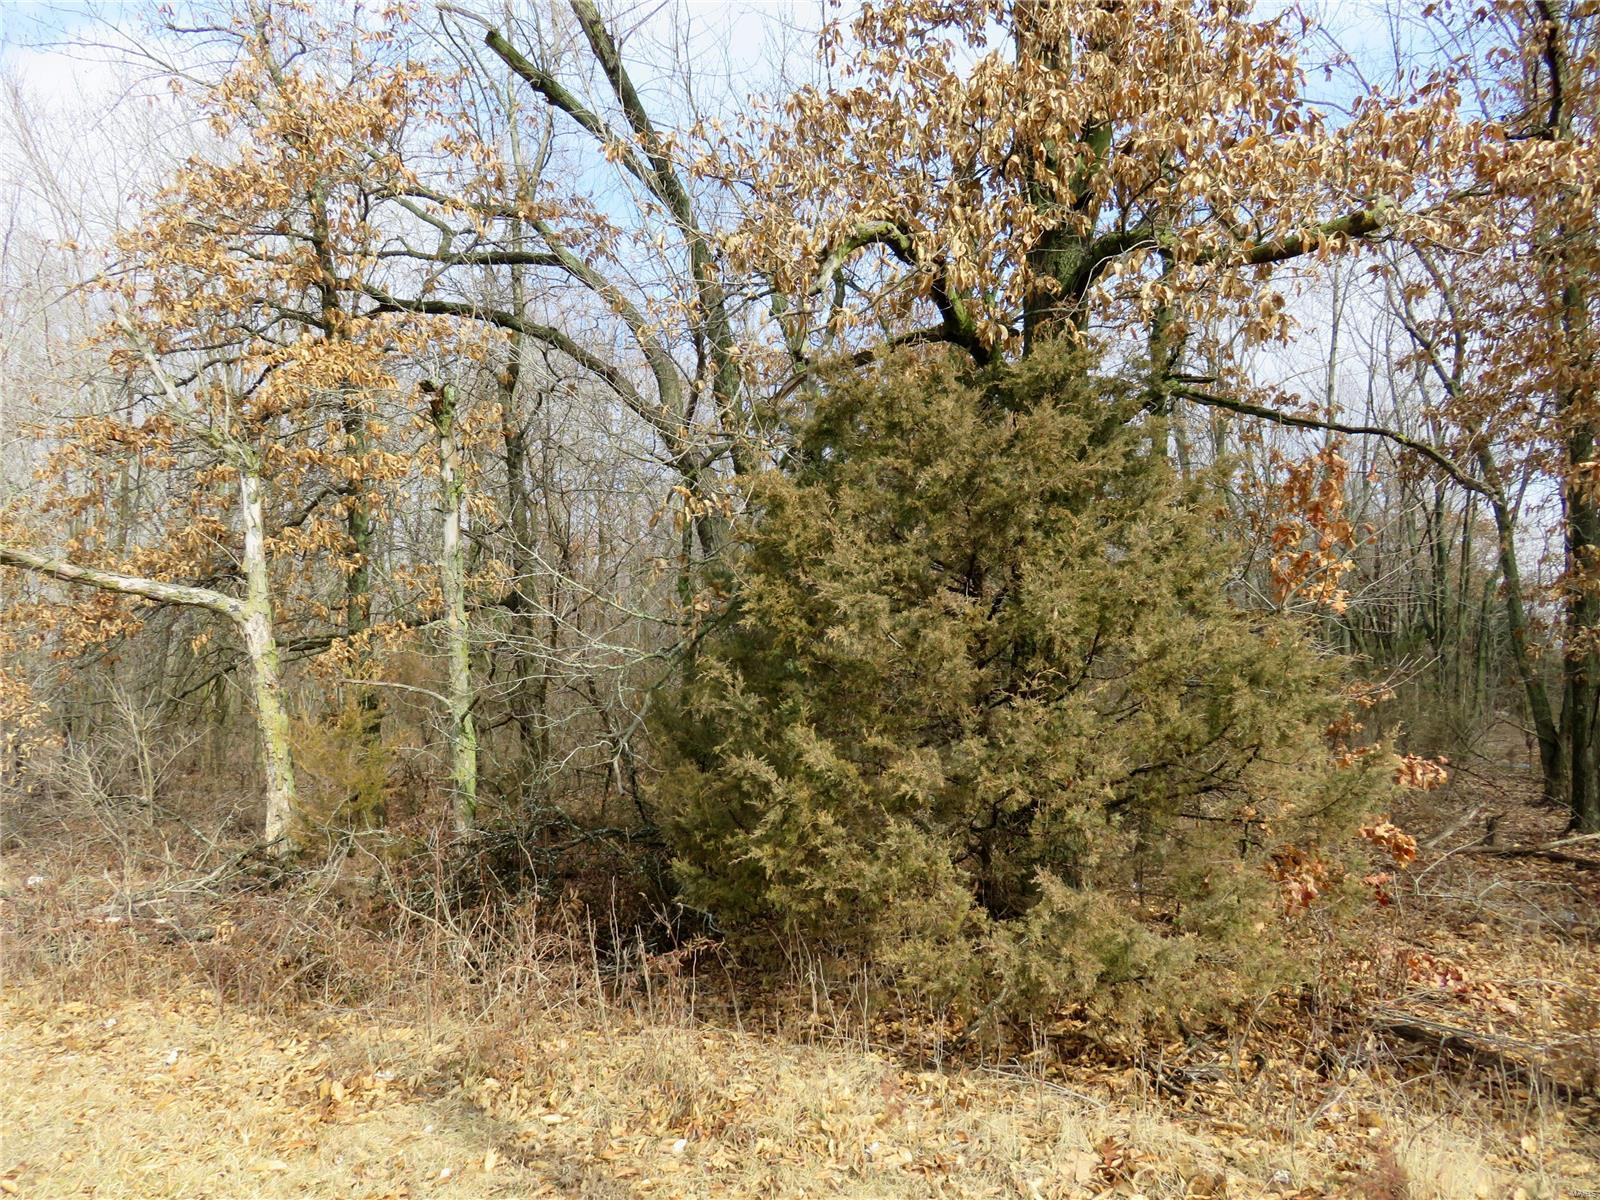 0 S Main Property Photo - Mount Olive, IL real estate listing